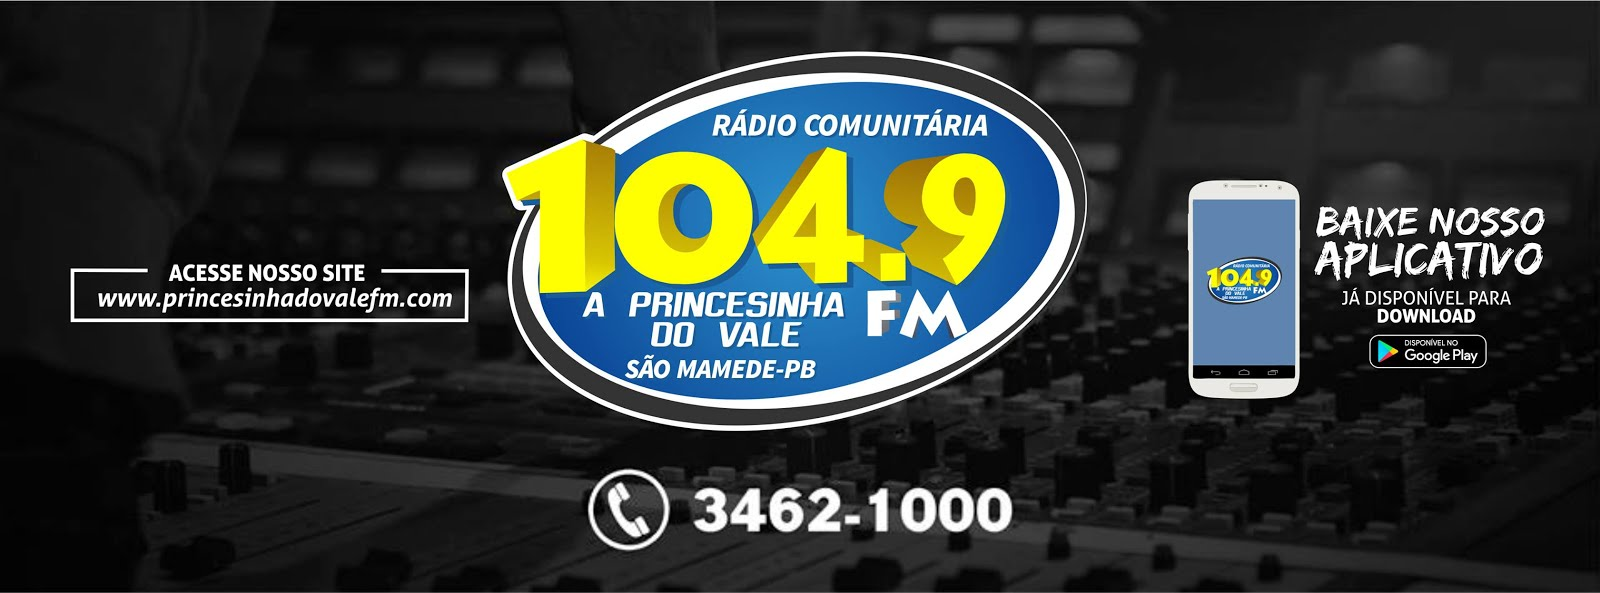 Radio Princesinha do Vale